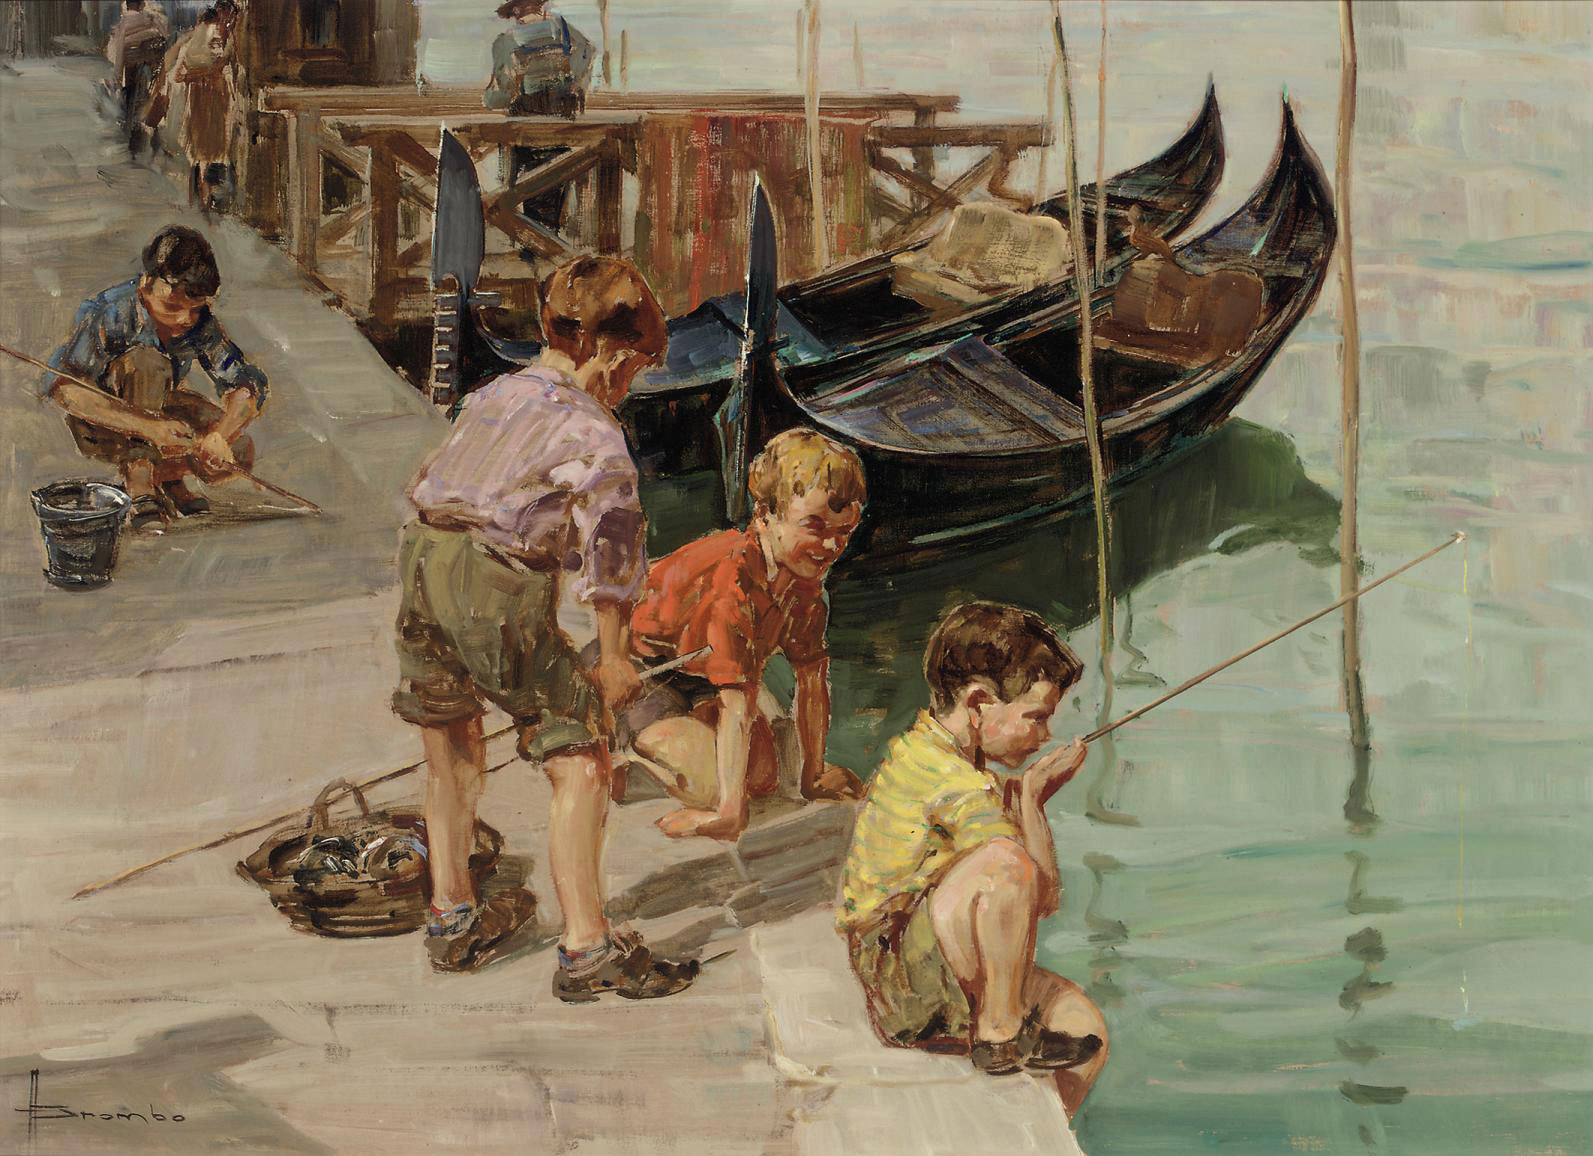 Fishing on a Venetian canal